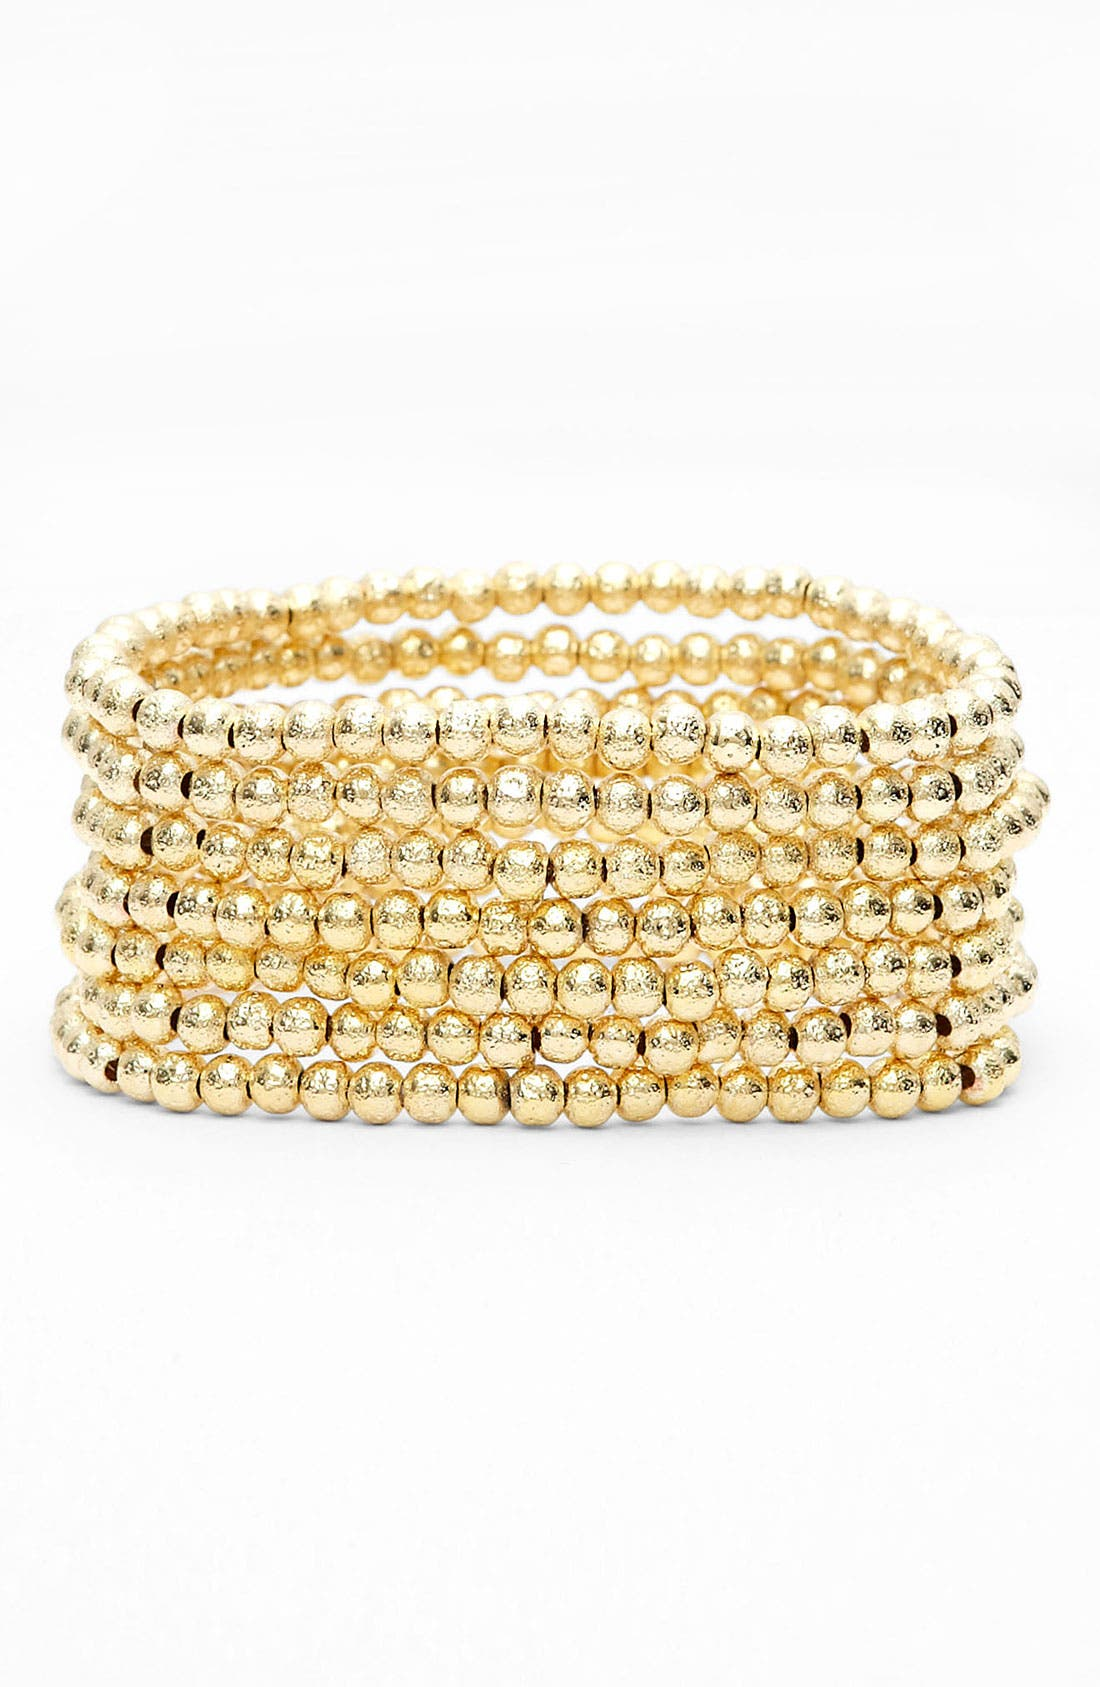 Alternate Image 1 Selected - Nordstrom 'Sand Dollar' Bead Stretch Bracelets (Set of 7)